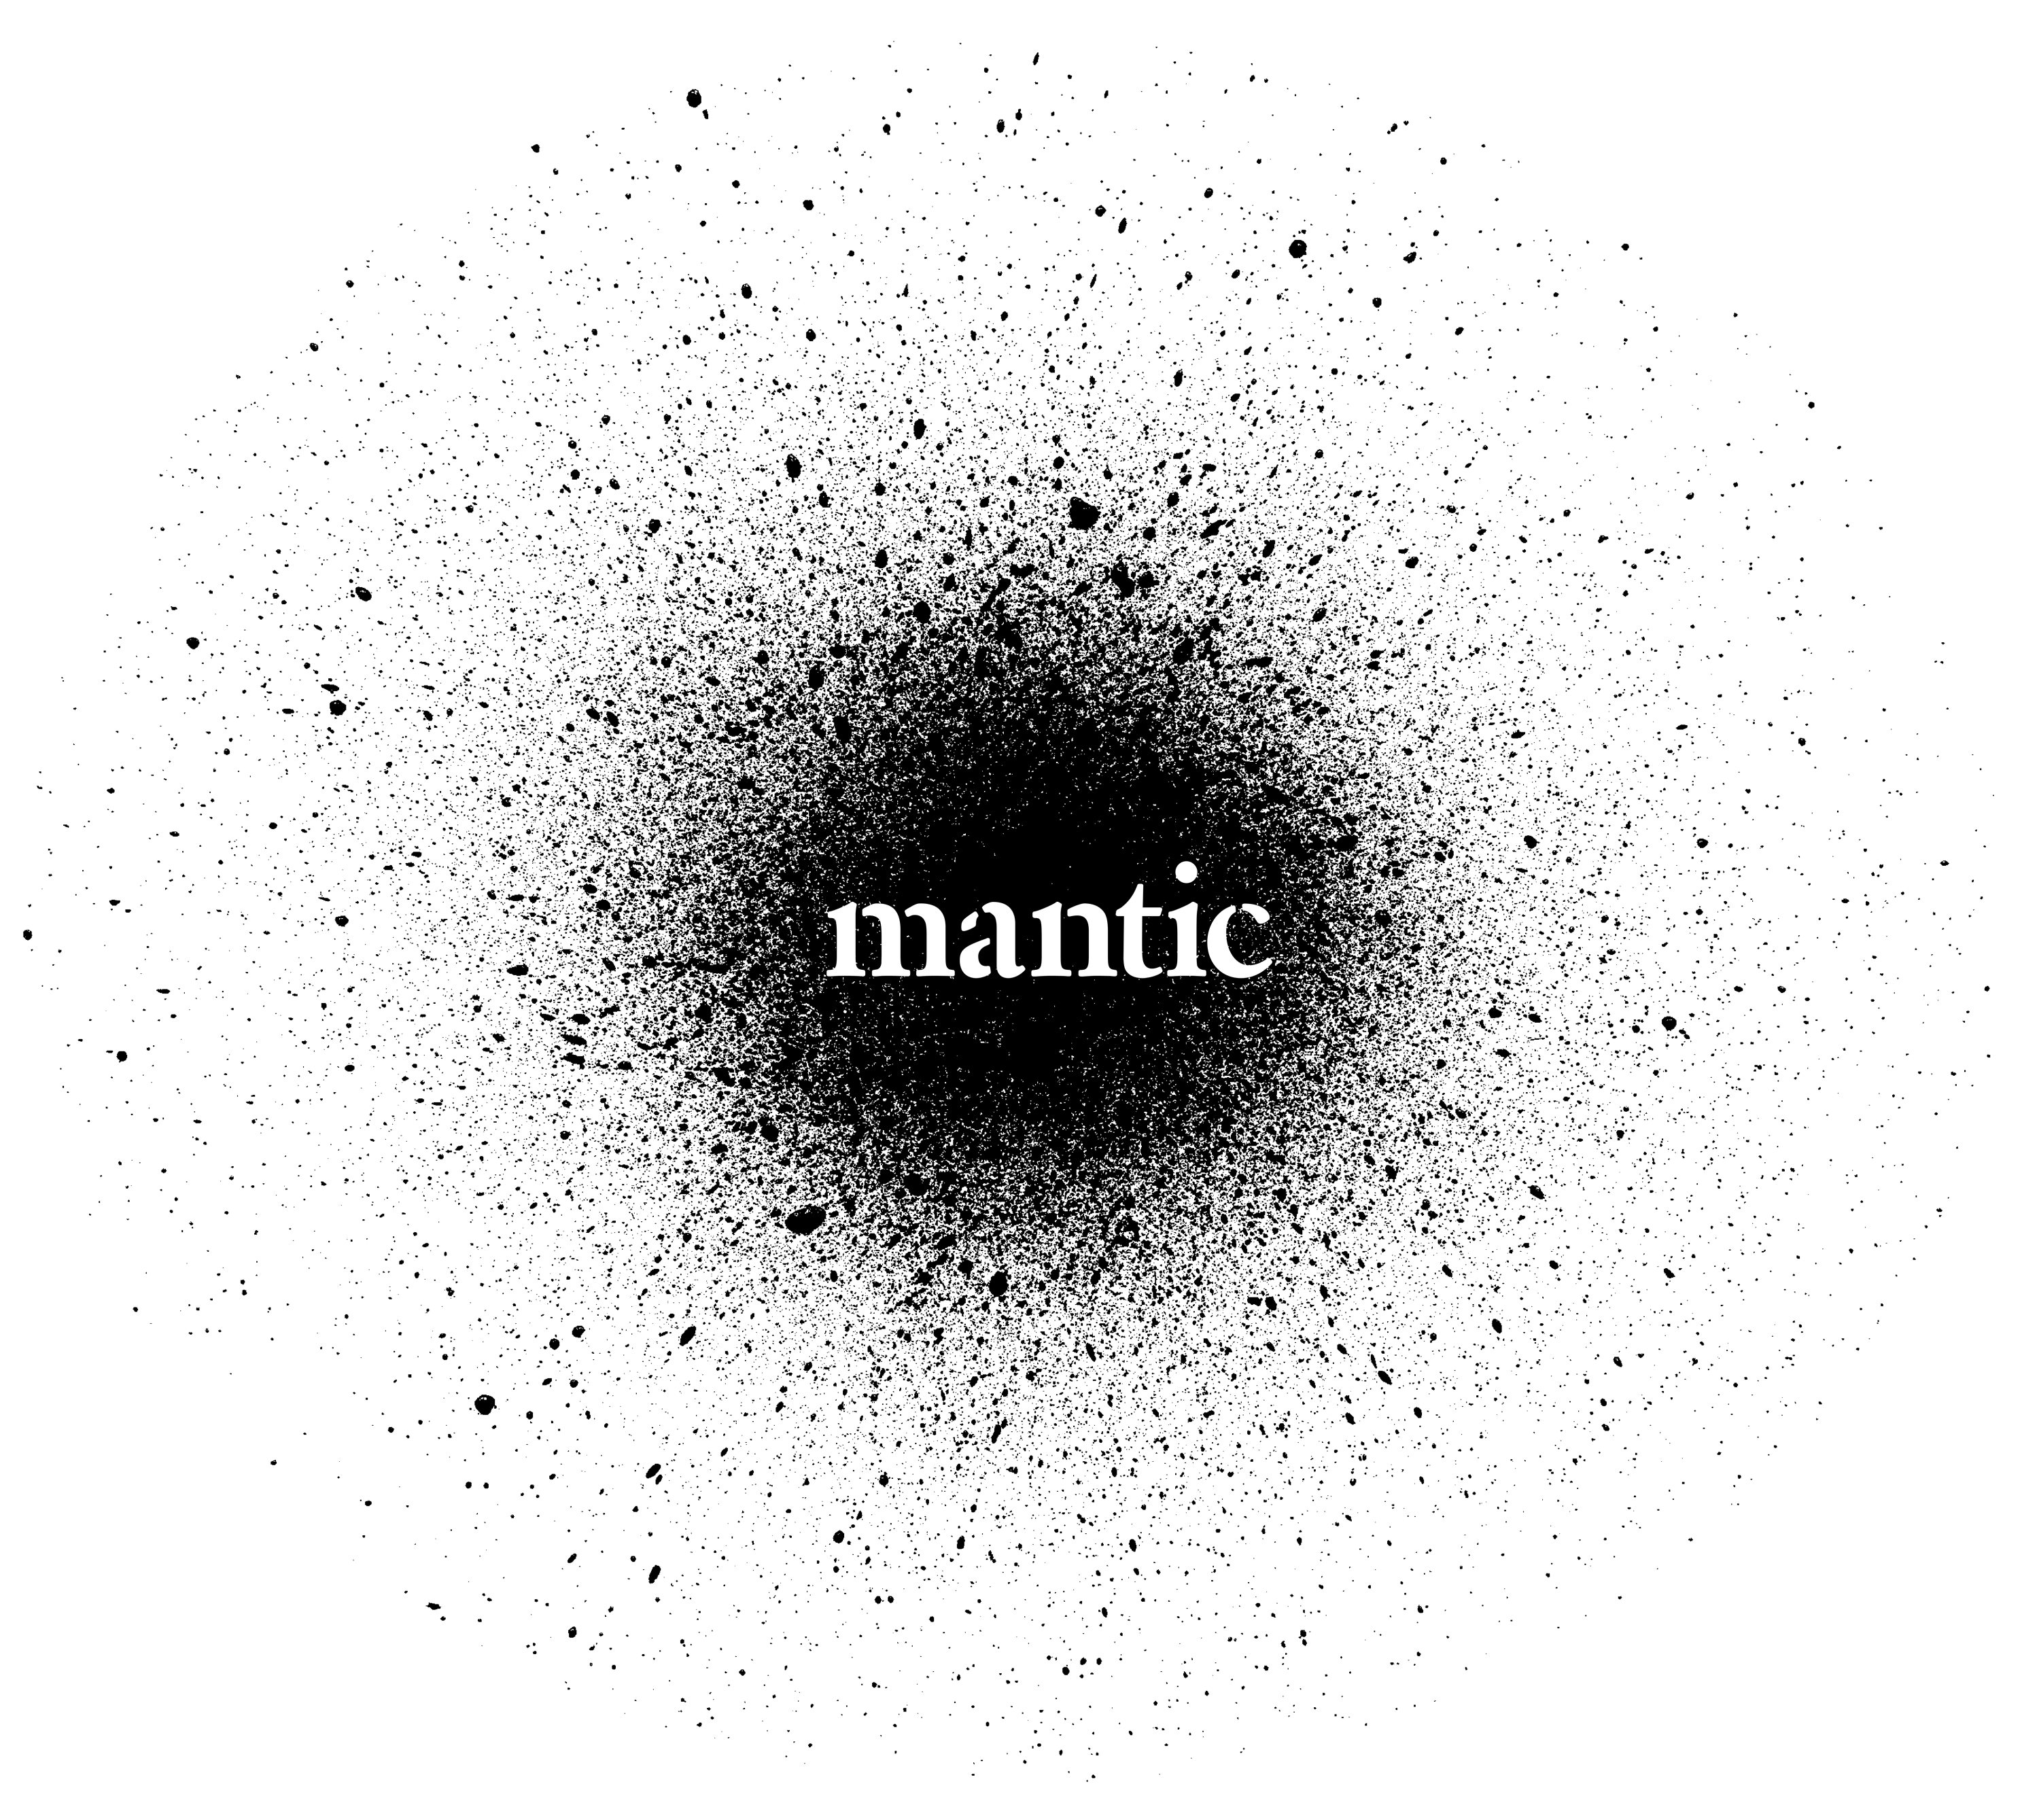 mantic-splat1